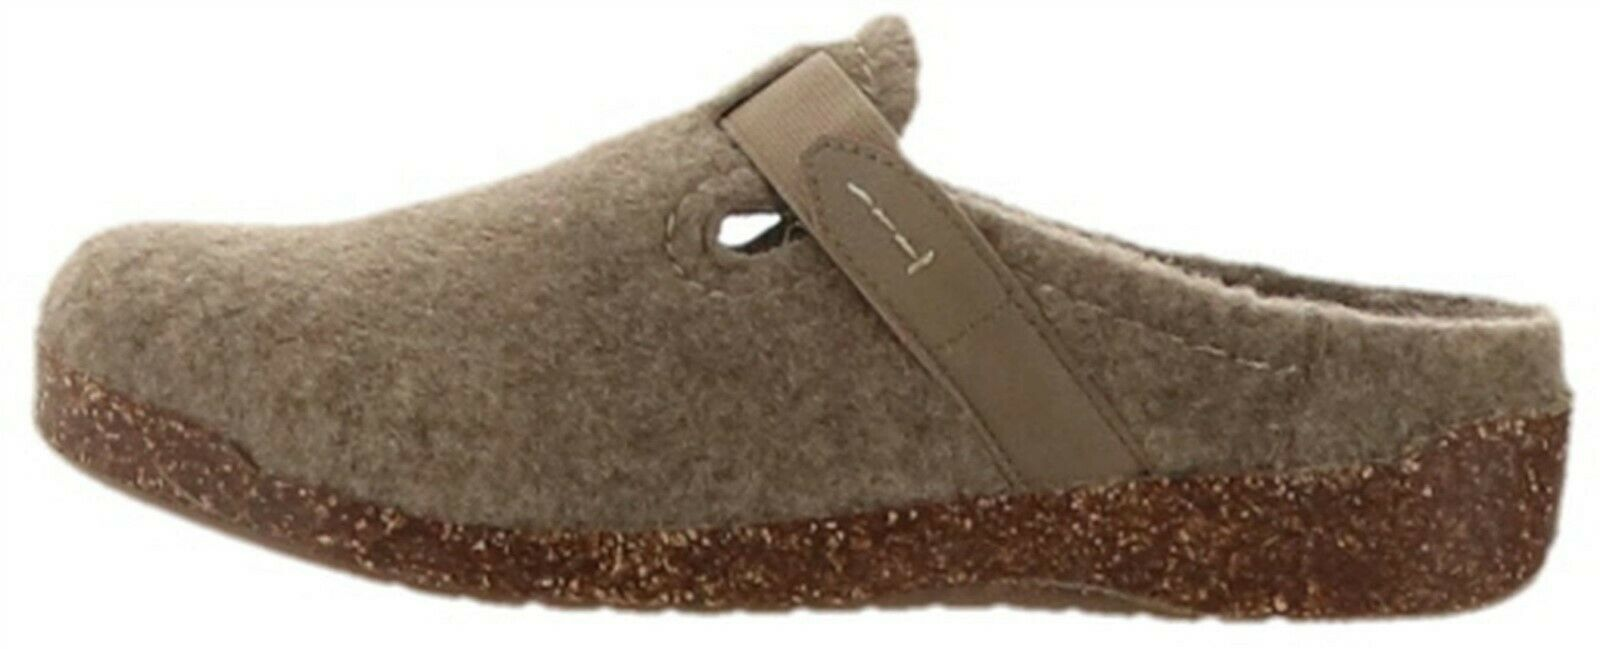 Primary image for Earth Origins Felt Slip-On Clogs Strap Detail Jenna Oatmeal 8.5M NEW A342507